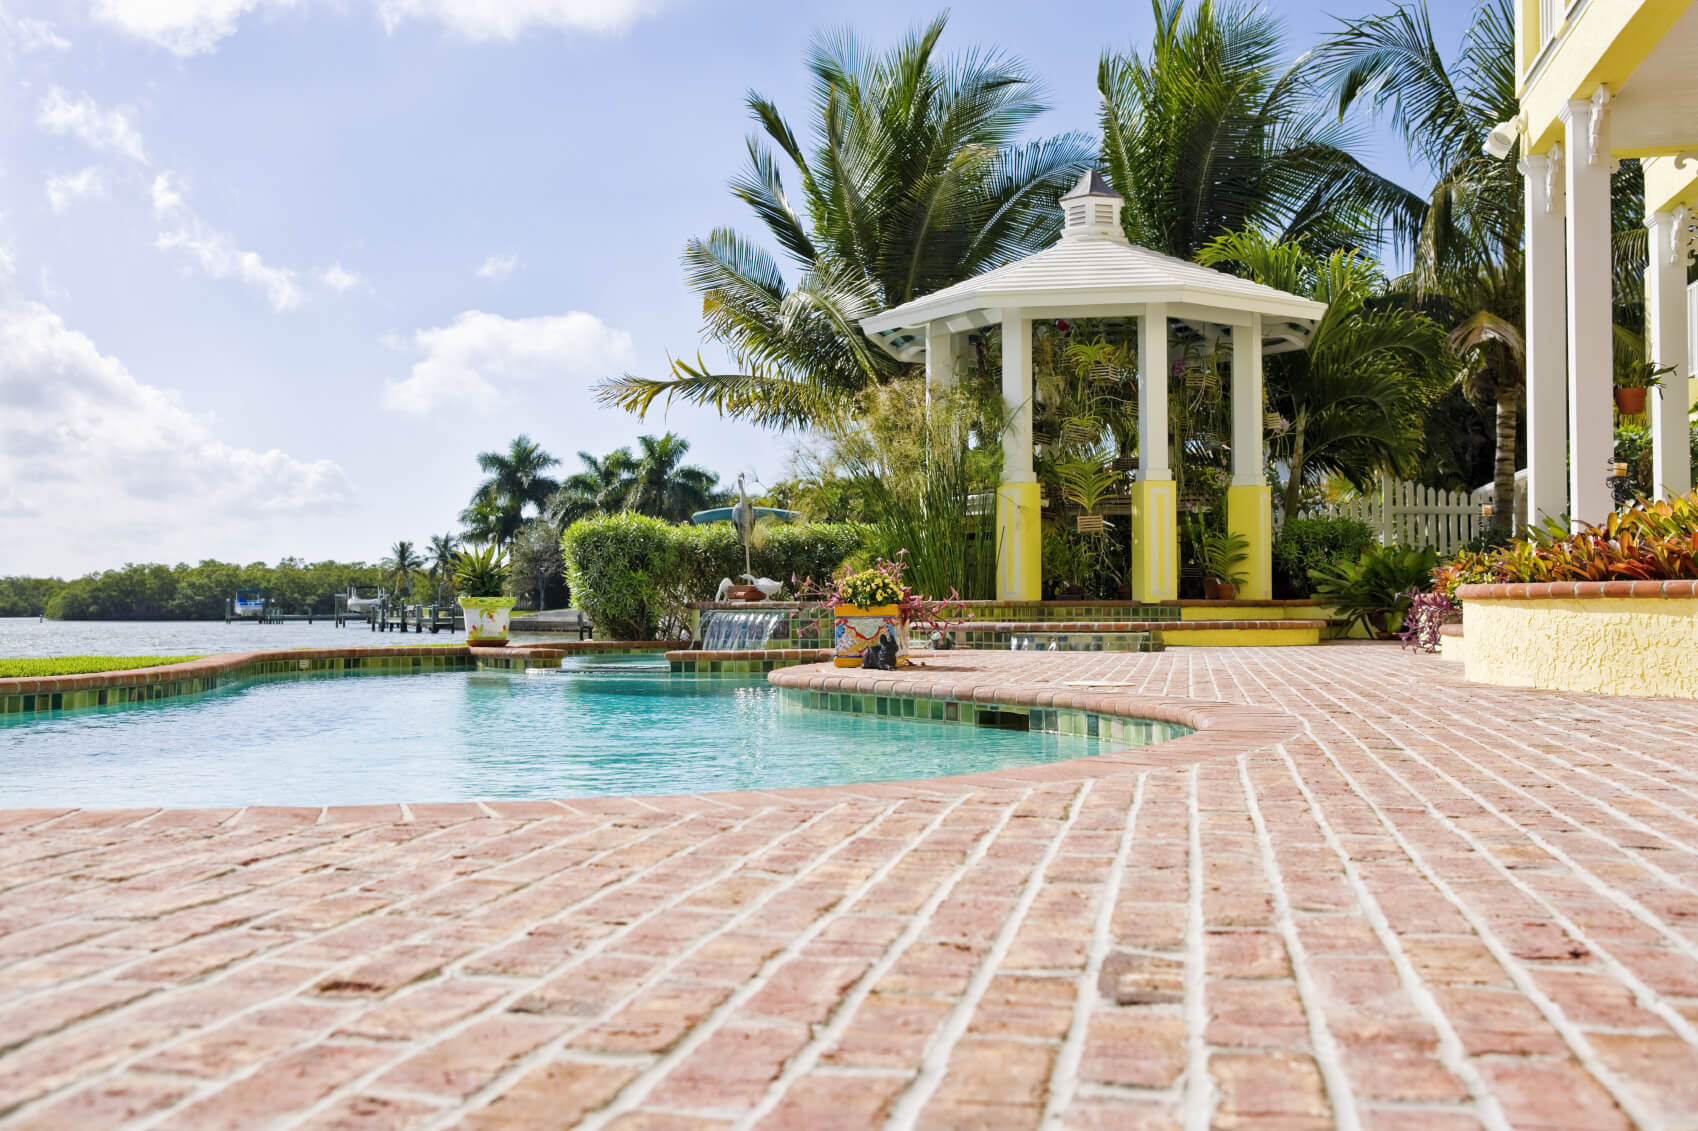 A gazebo can act as a transition between two different areas in your yard. Here it acts as a barrier to the densely wooded area on the other side of the pool.